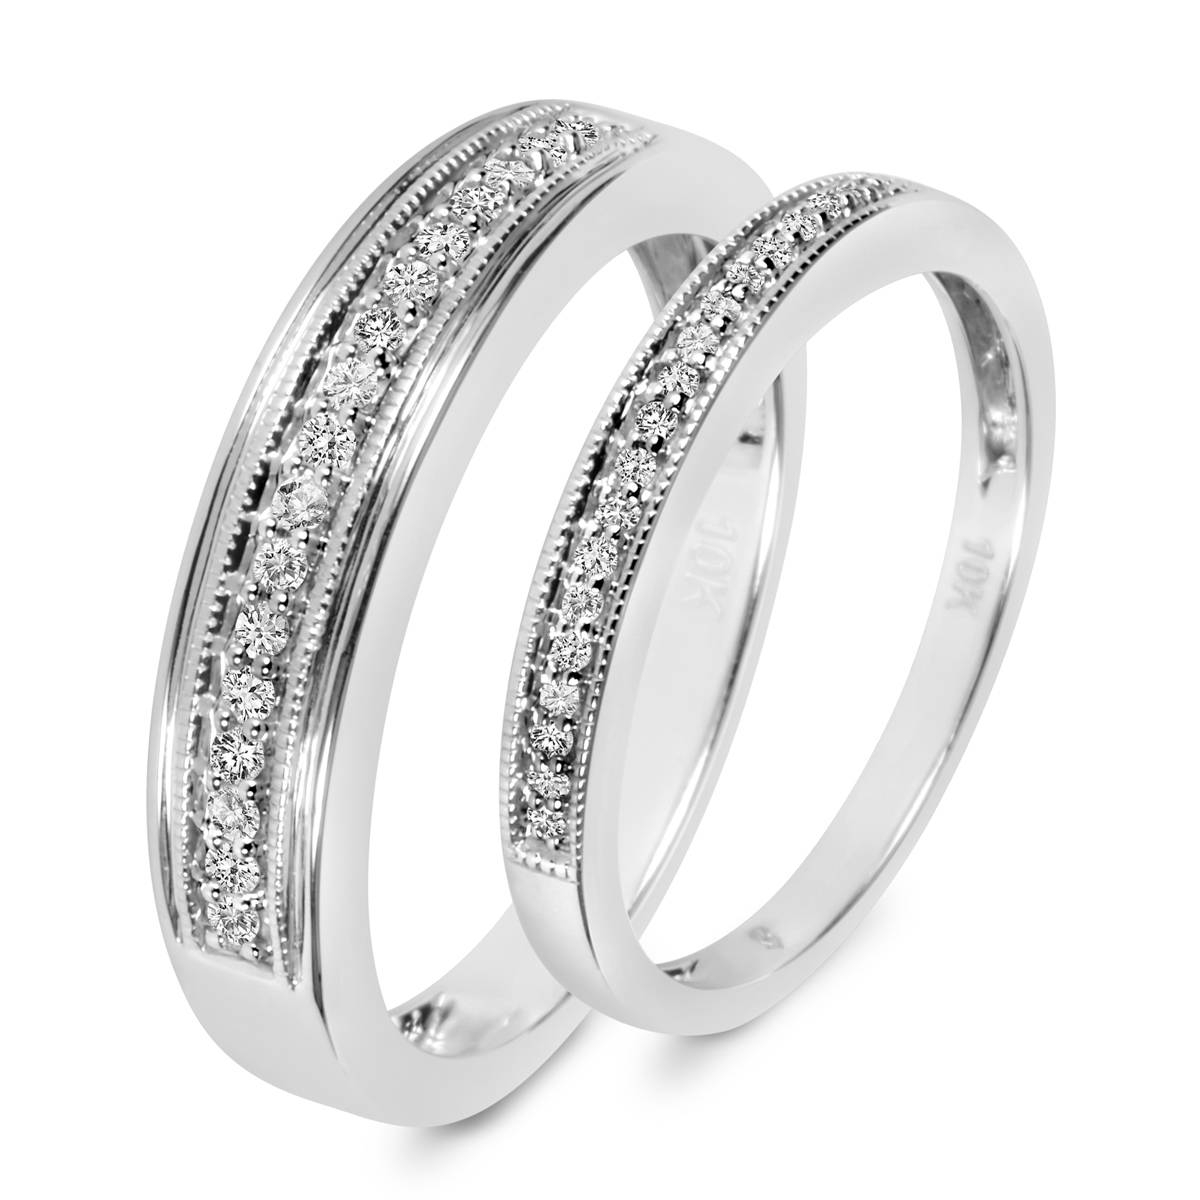 Wedding Rings : Zales Wedding Rings For Him Zales Wedding Rings For Zales Diamond Wedding Bands (View 13 of 15)